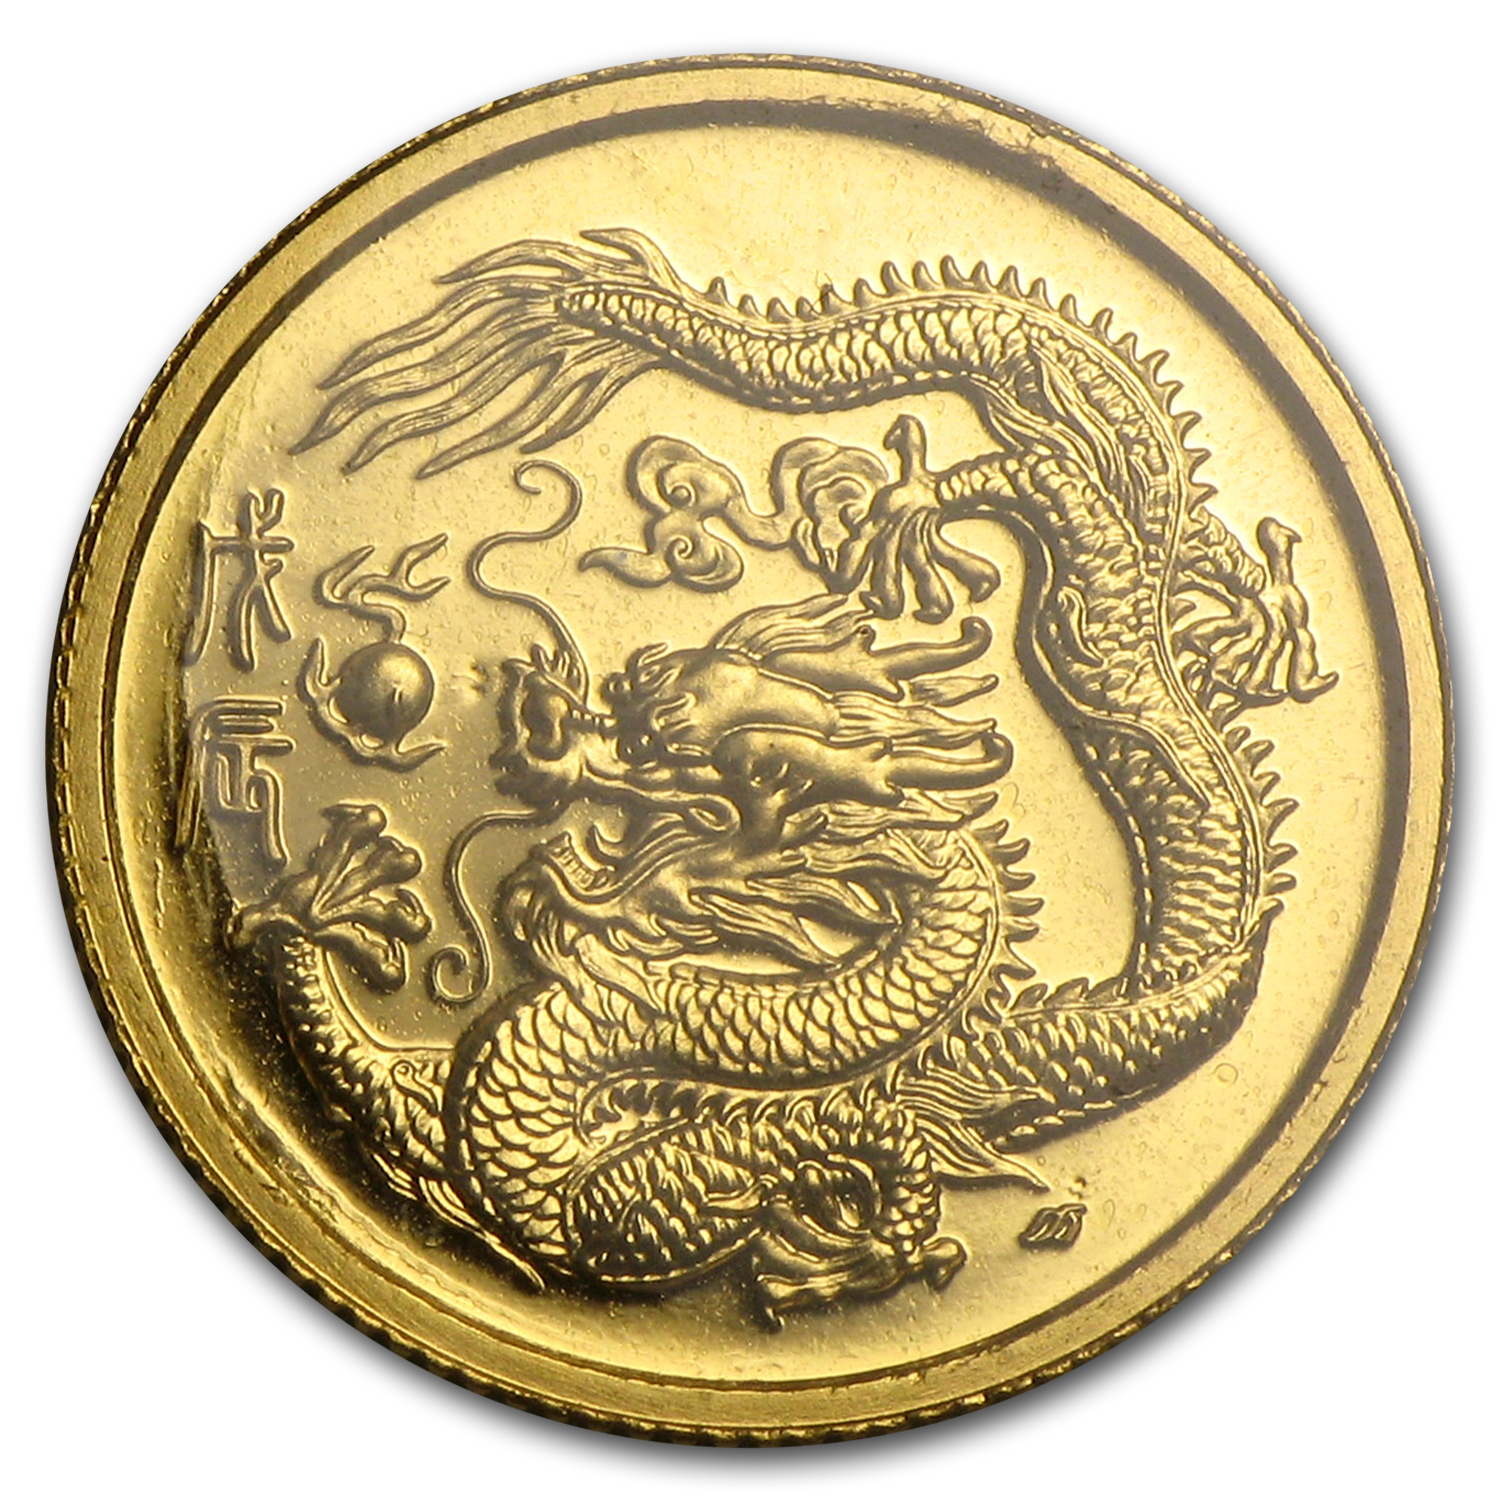 Singapore 1988 1/20 oz Gold Year of the Dragon